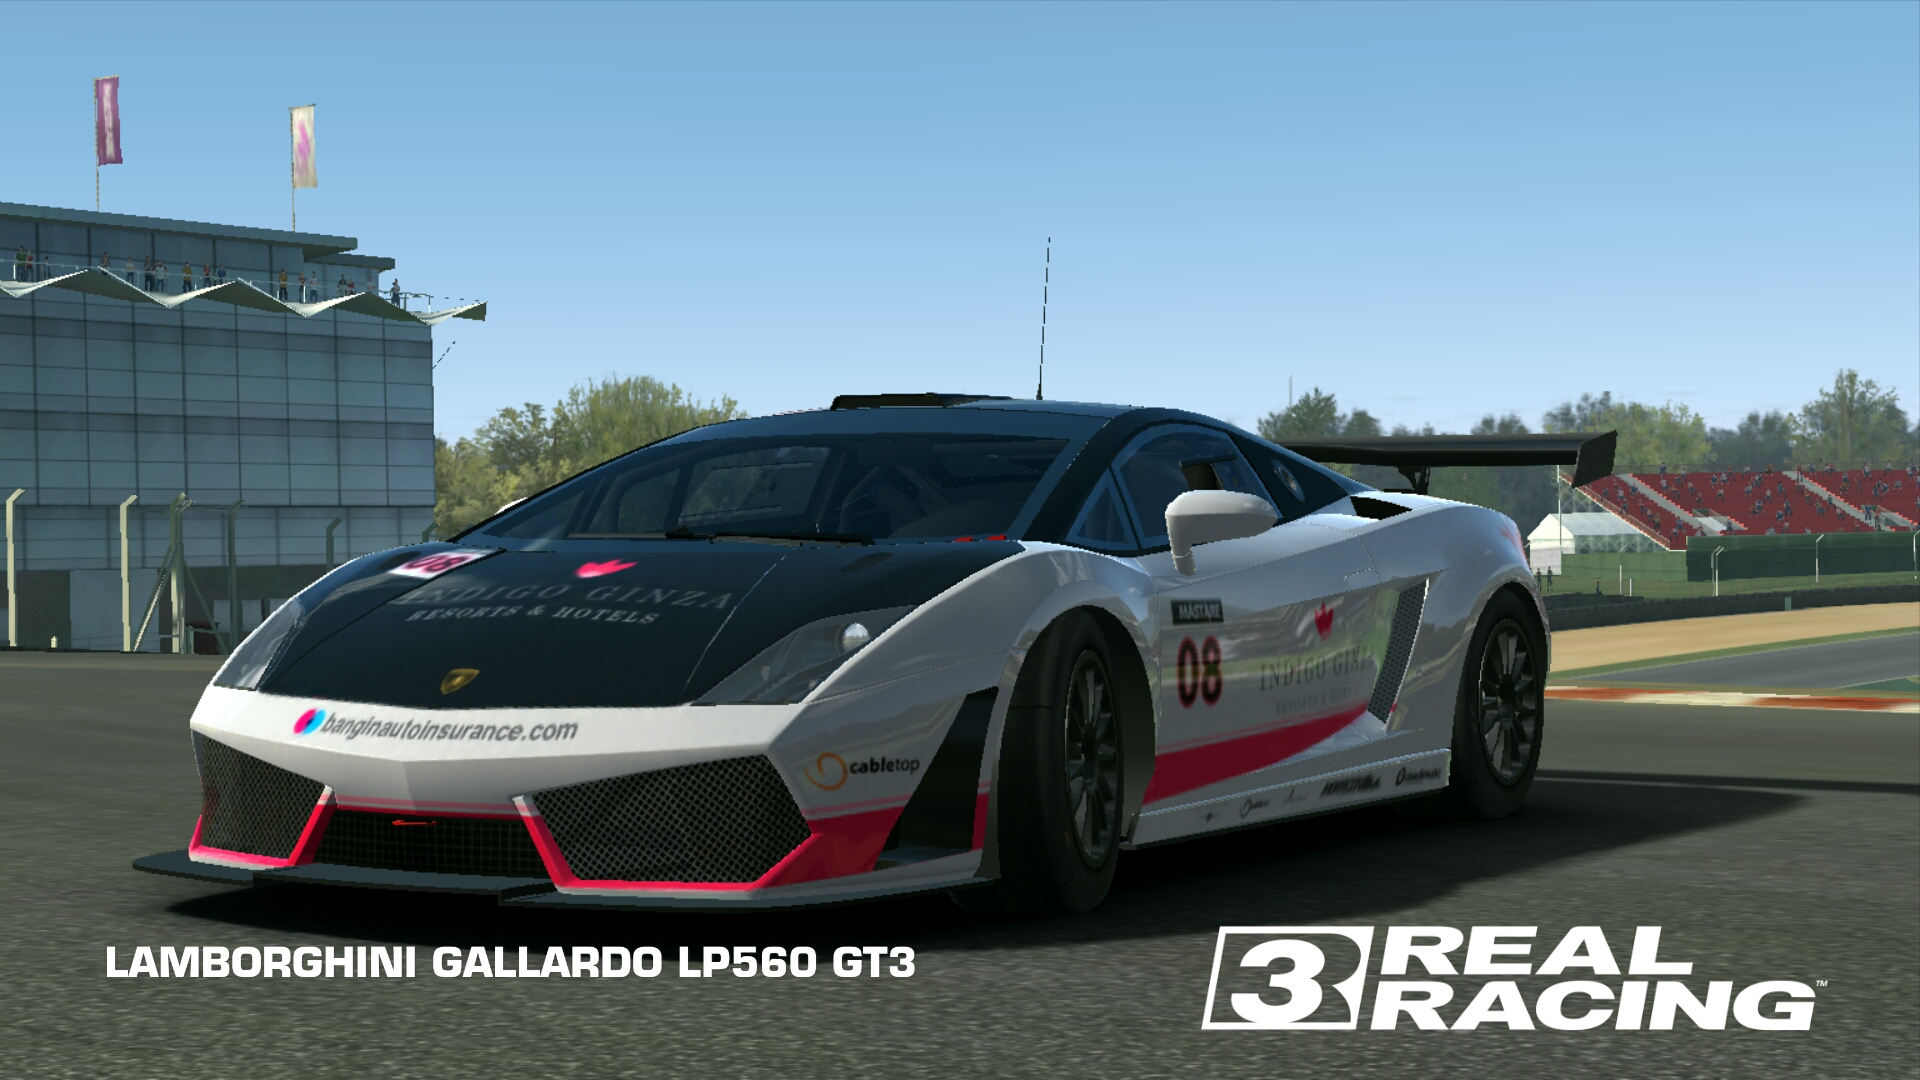 Ordinaire GALLARDO LP560 GT3